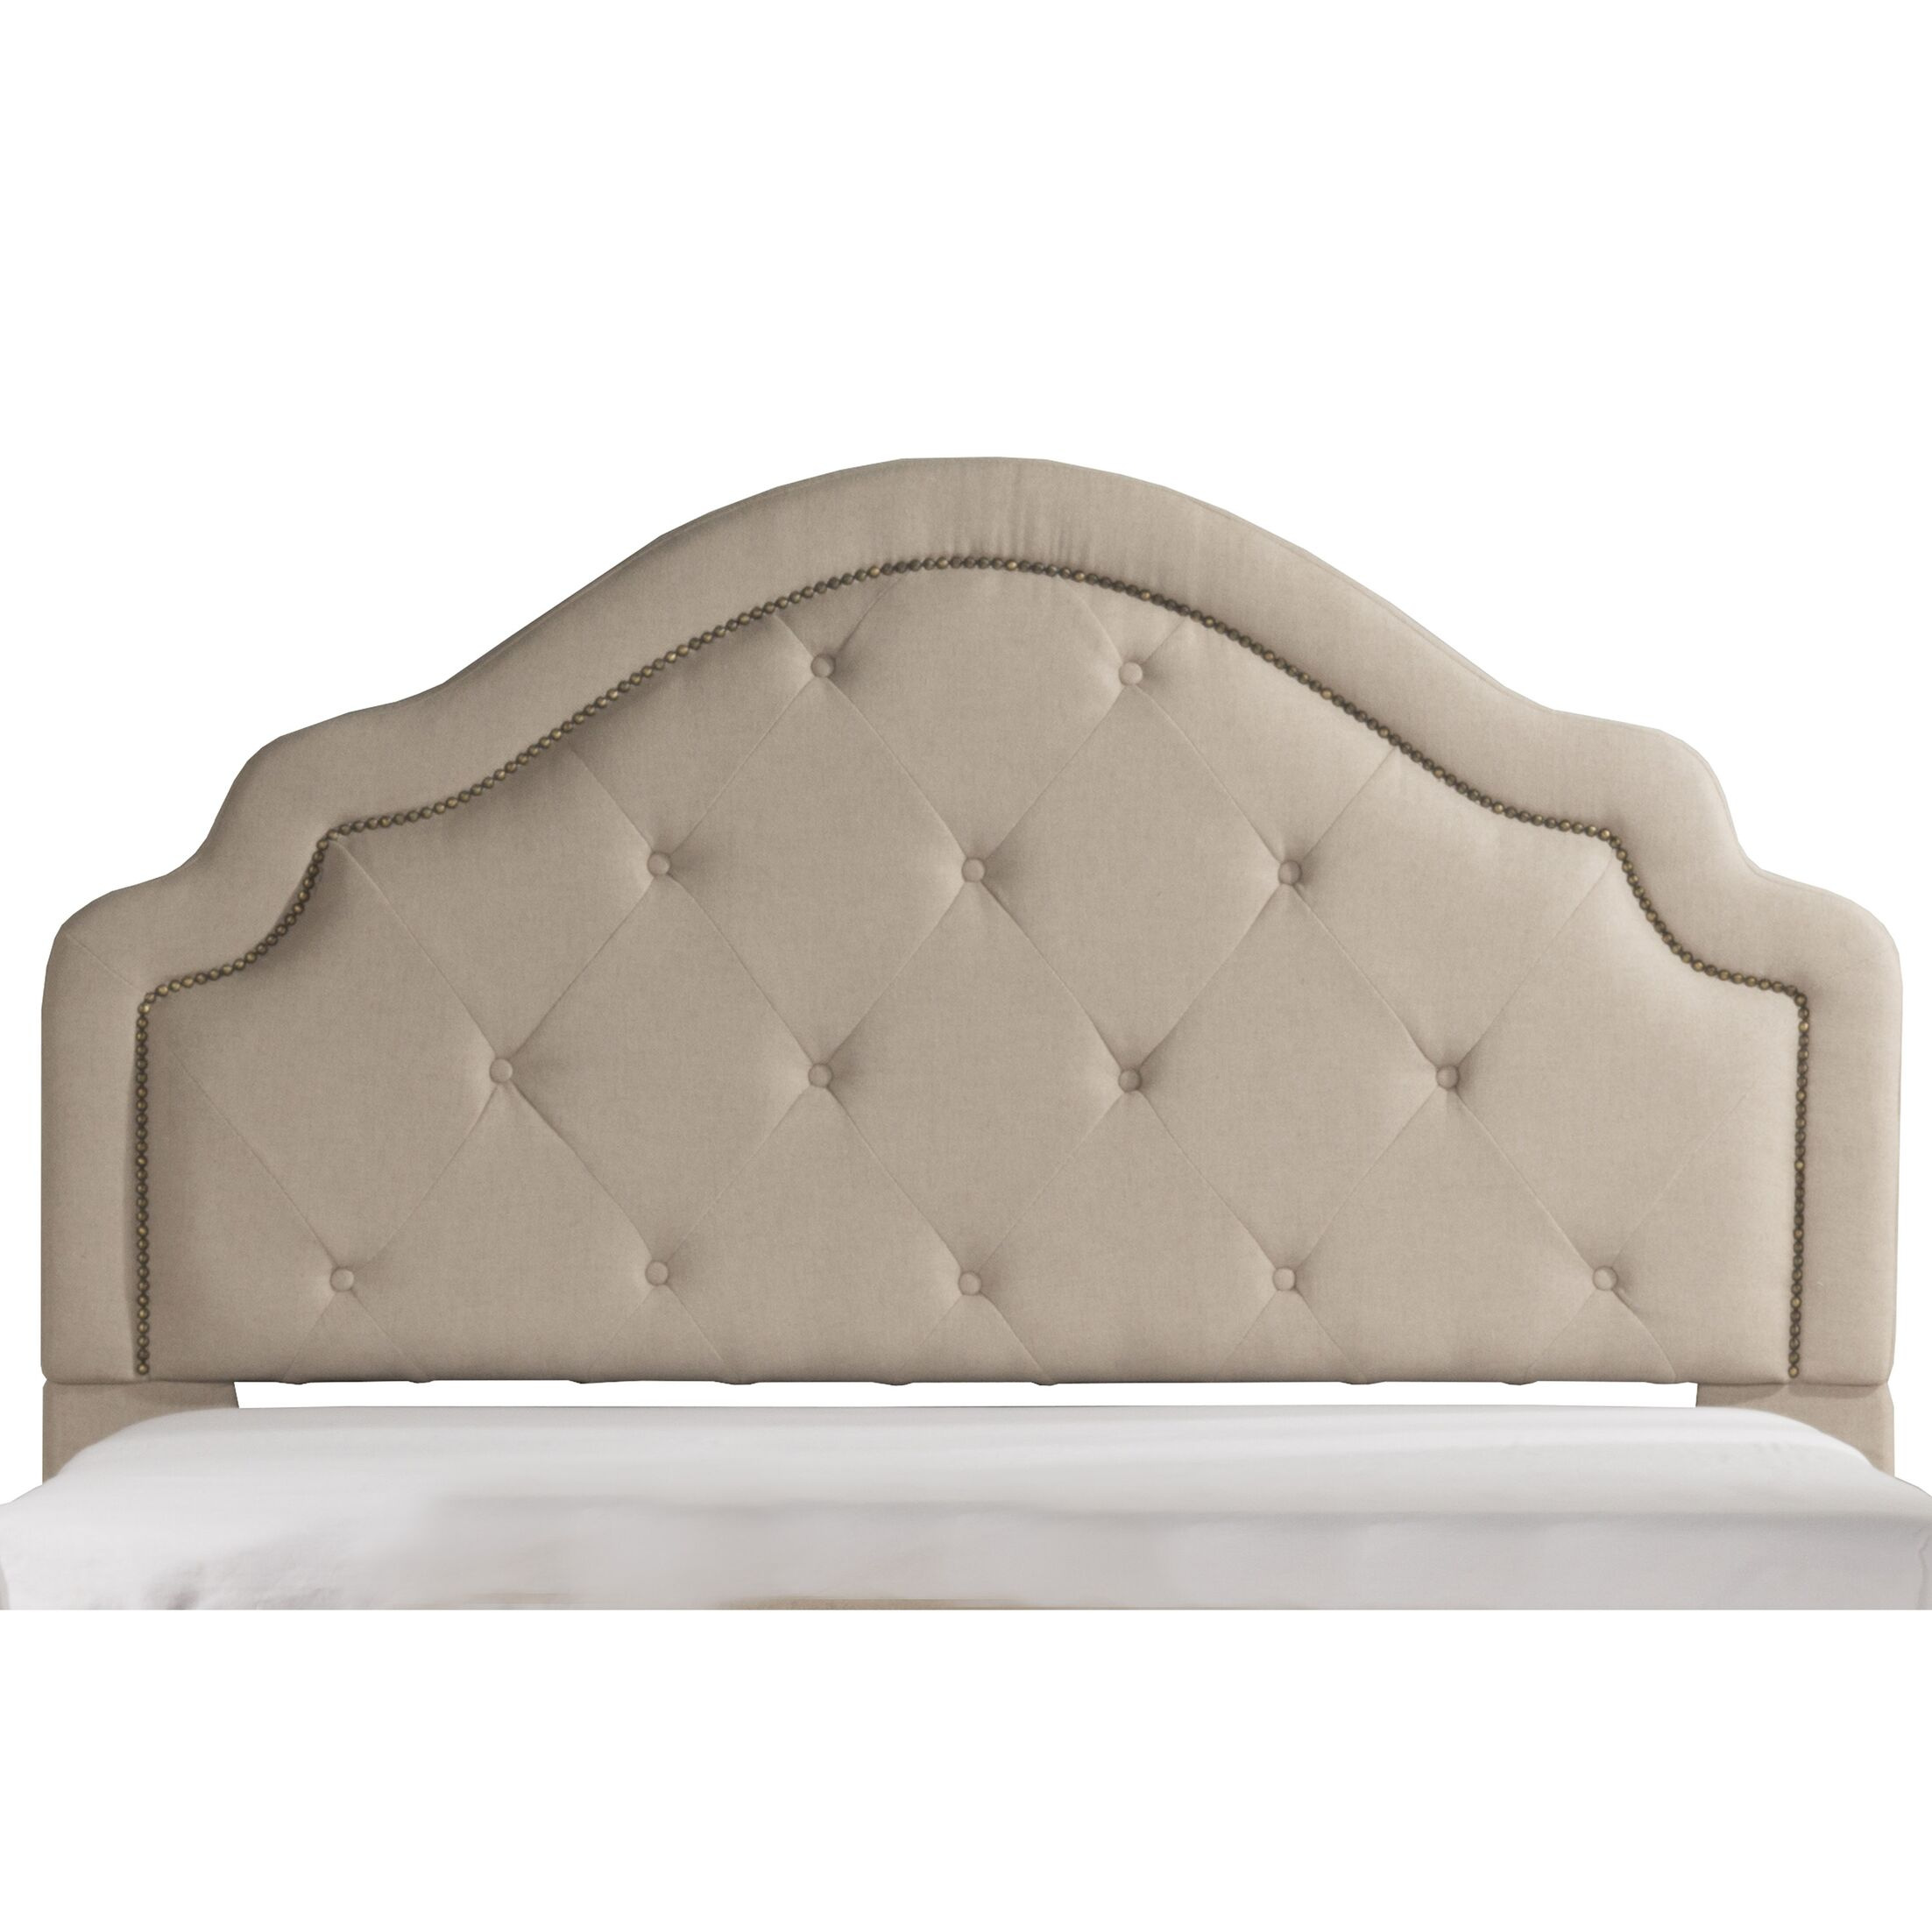 Broughtonville Tufted Upholstered Panel Headboard Upholstery: Natural, Size: Queen